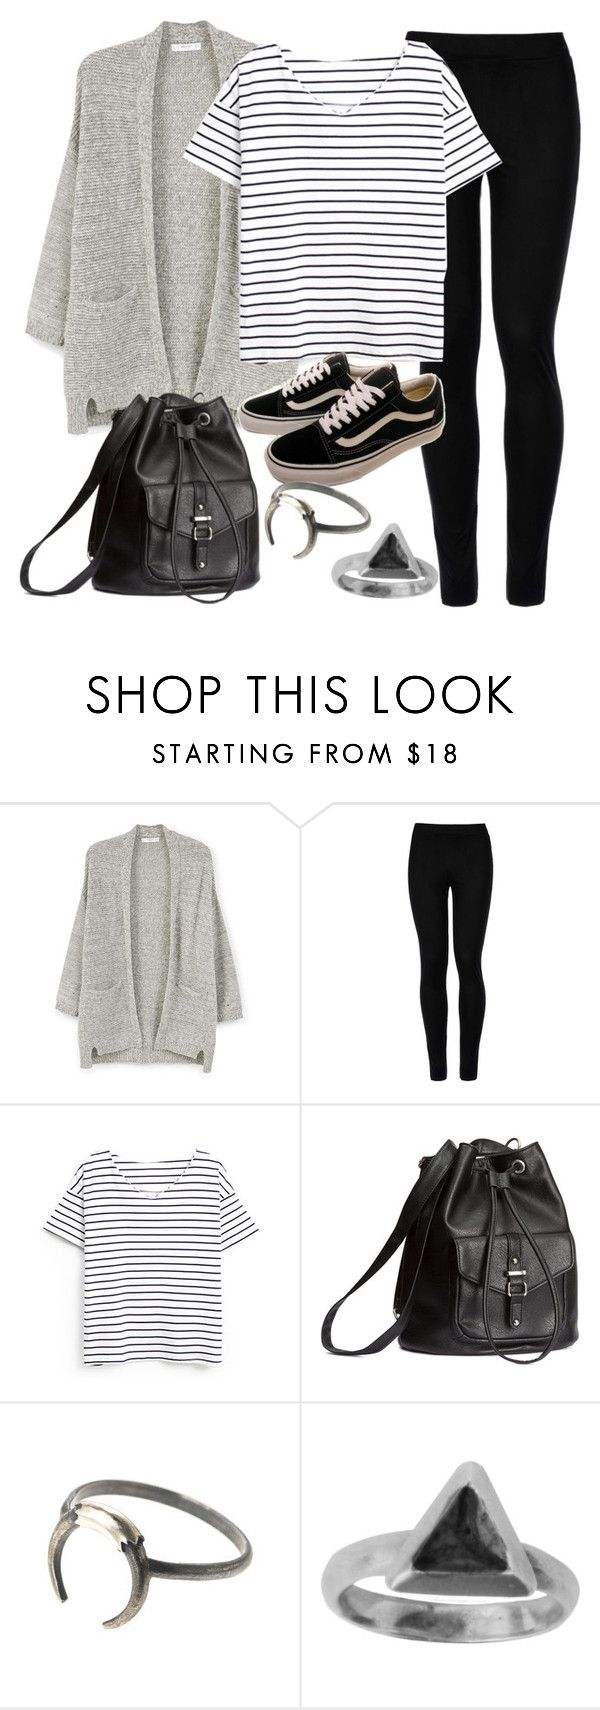 """""""Style #11607"""" by vany-alvarado ❤ liked on Polyvore featuring MANGO, Wolford, Vans, H&M and Zoemou"""